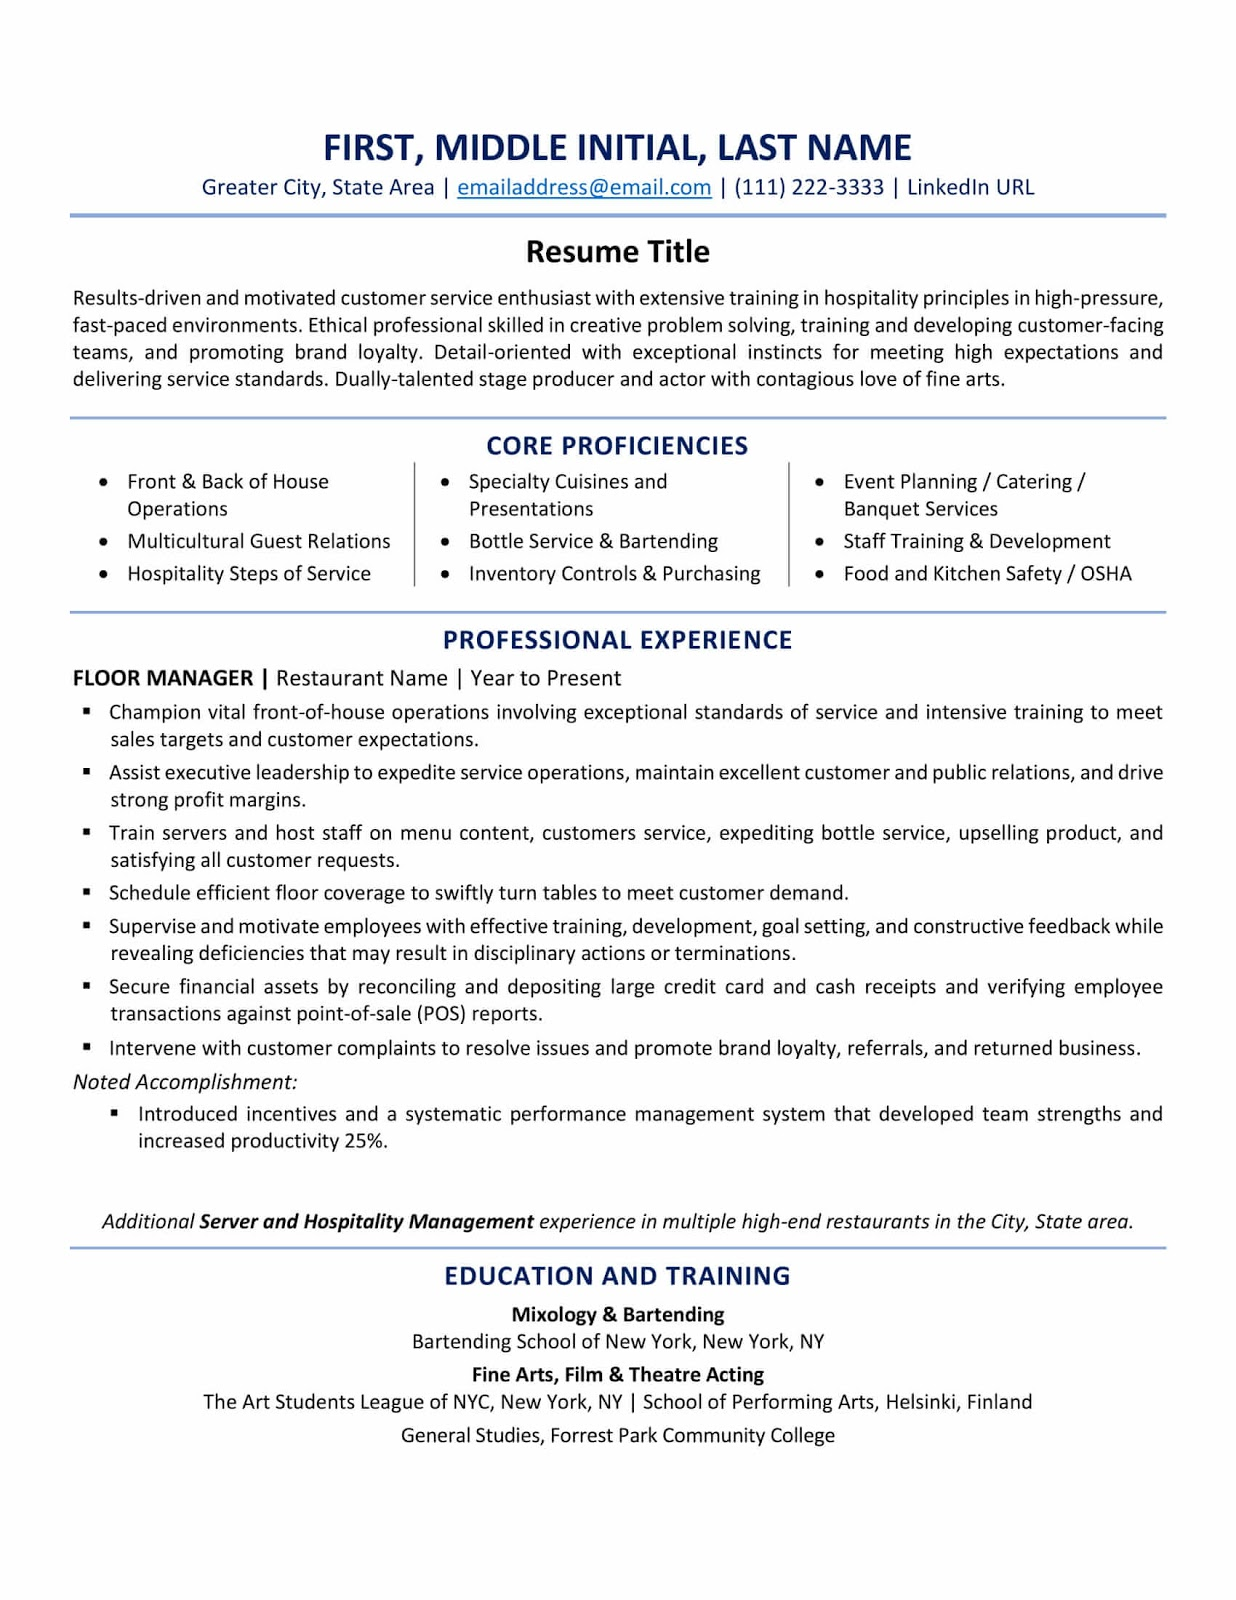 resume format best tips and examples updated for it jobs college boosters marketing Resume Best Resume For It Jobs